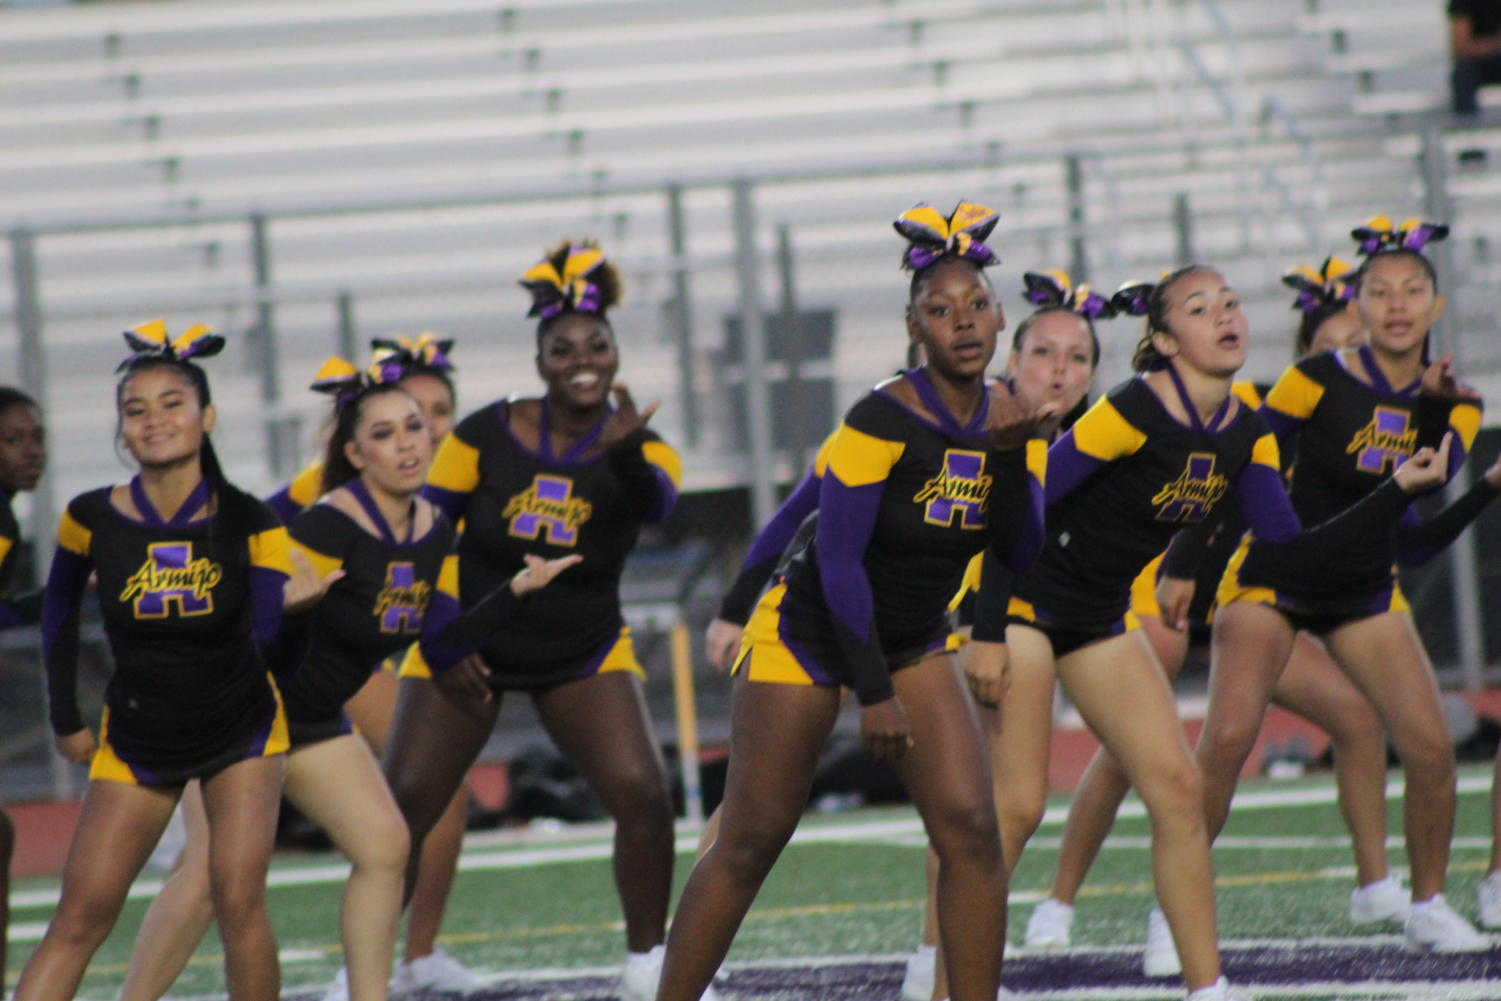 Cheerleaders give it their all at every game to keep the fans hyped.